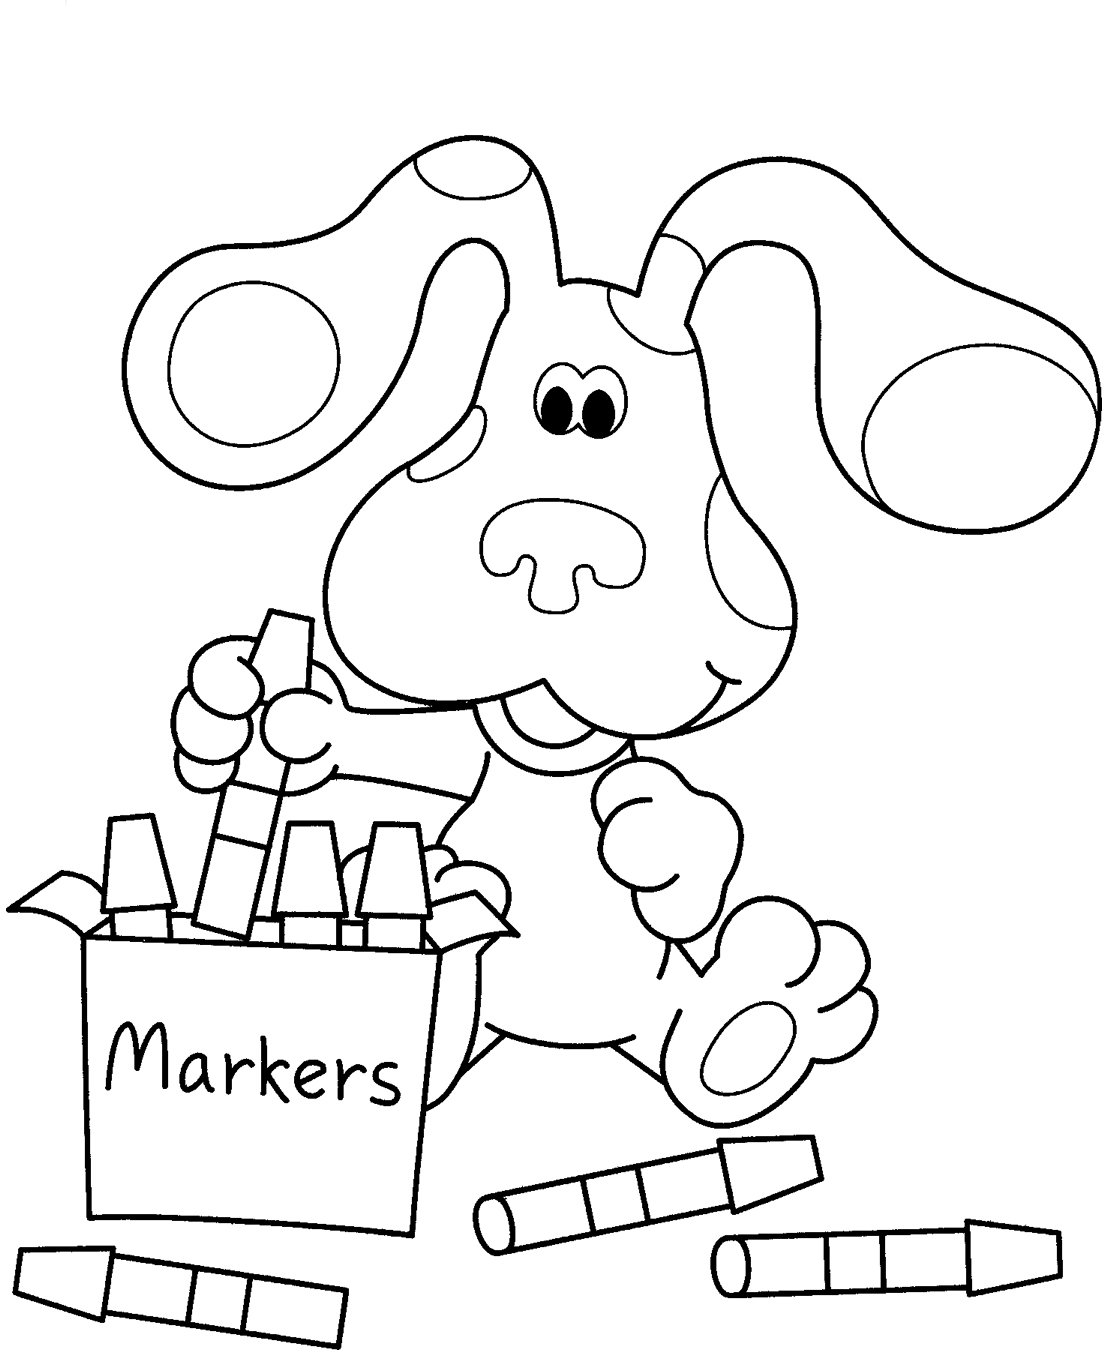 Blues Clues Coloring Pages Free Printable Blues Clues Coloring Pages For Kids